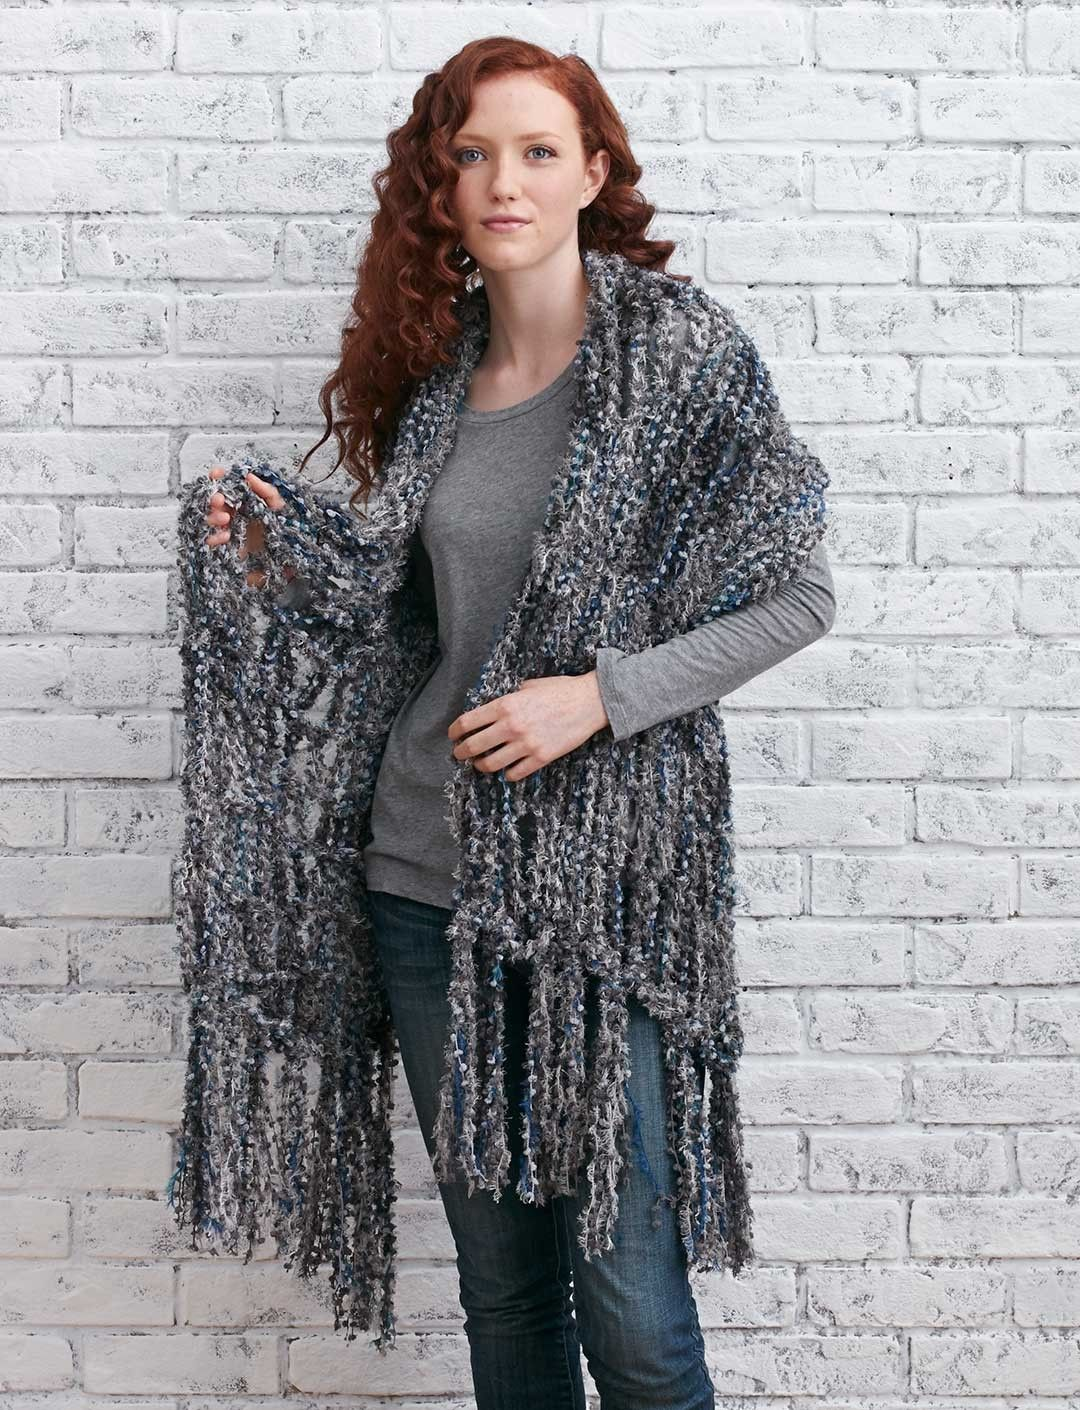 Arm knit fringed wrap knitting patterns patterns arm knit fringed wrap knitting patterns patterns yarnspirations bankloansurffo Images